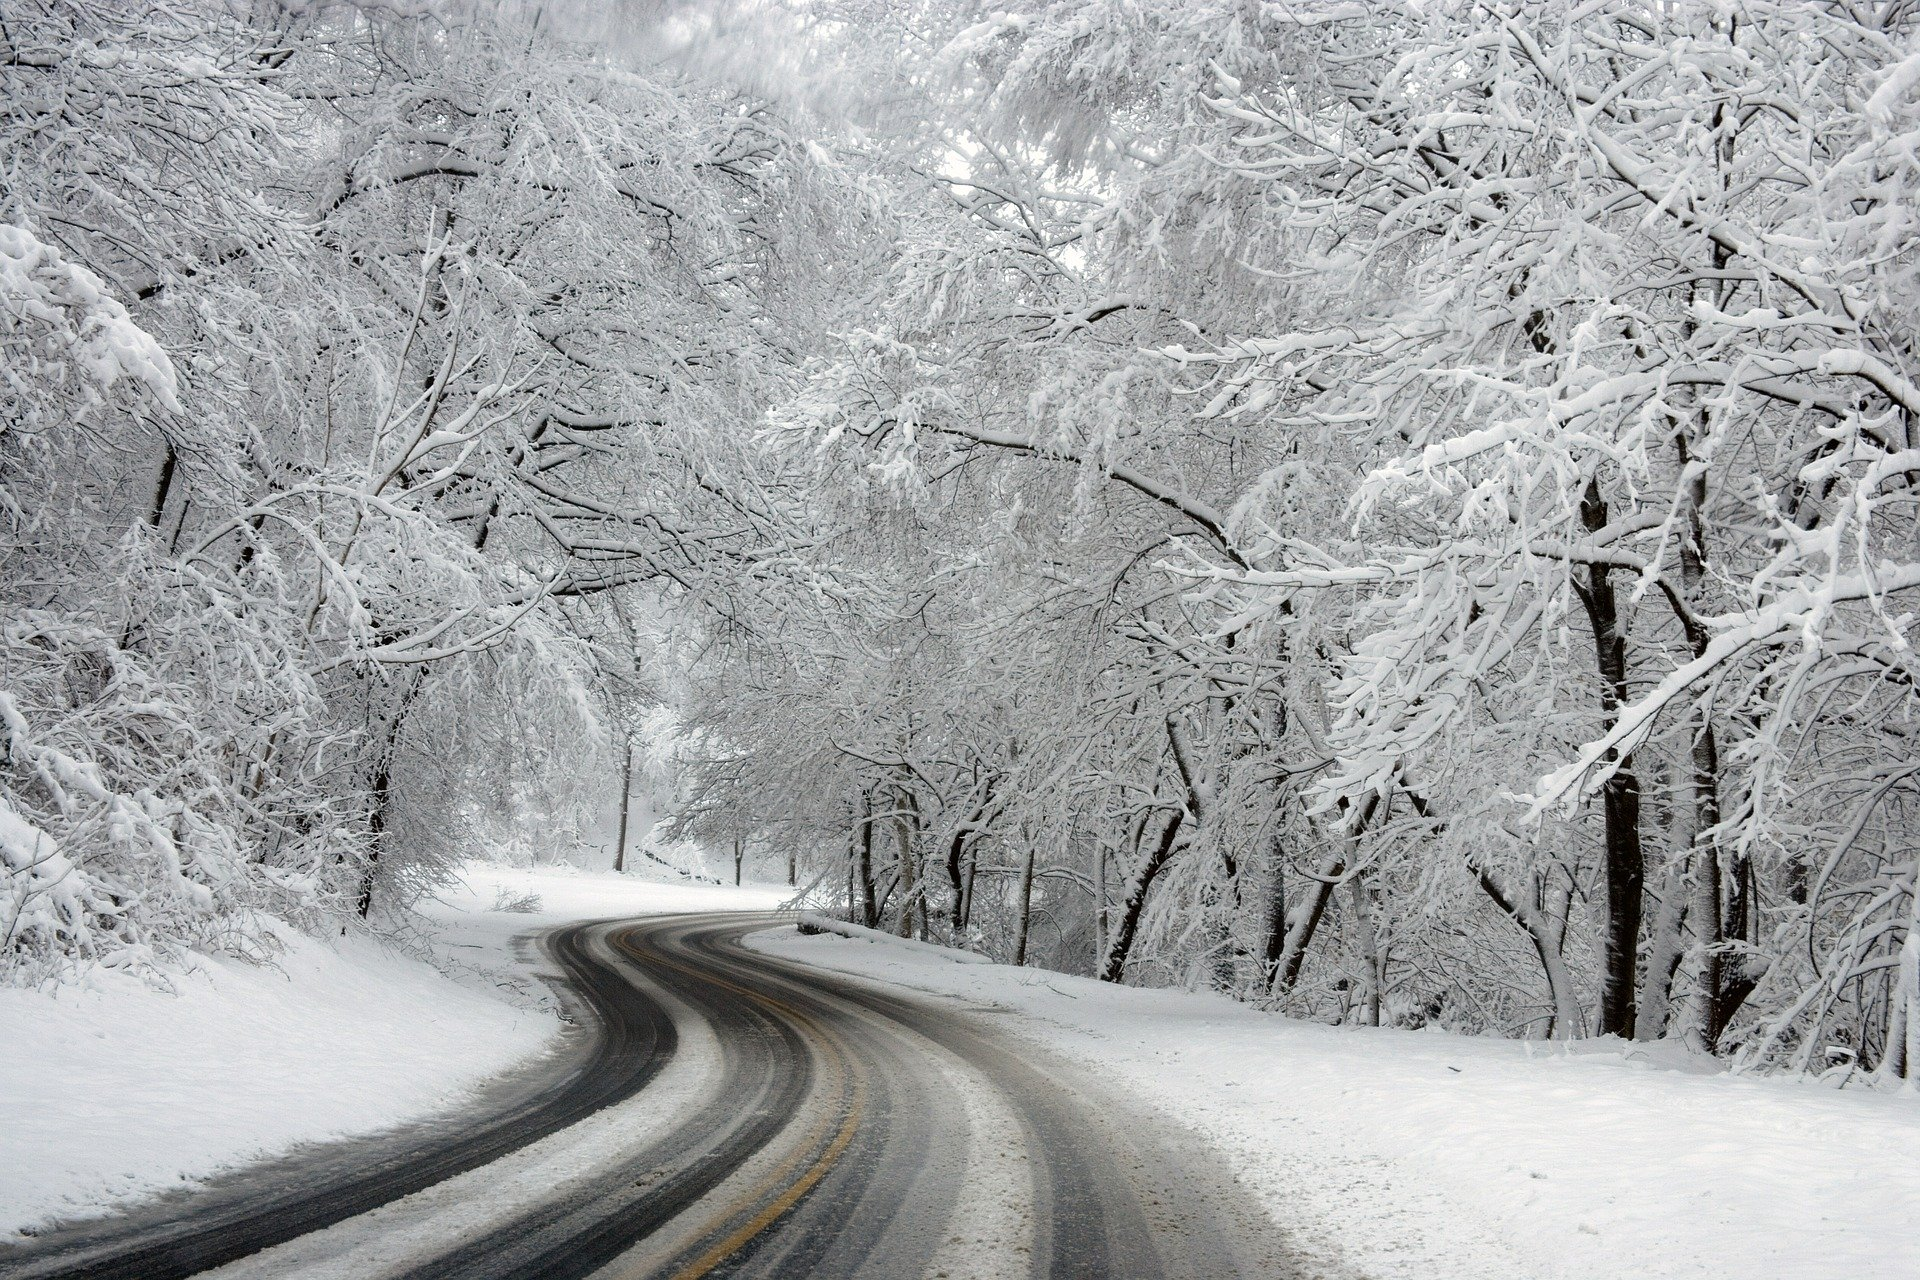 Snowy Road Image